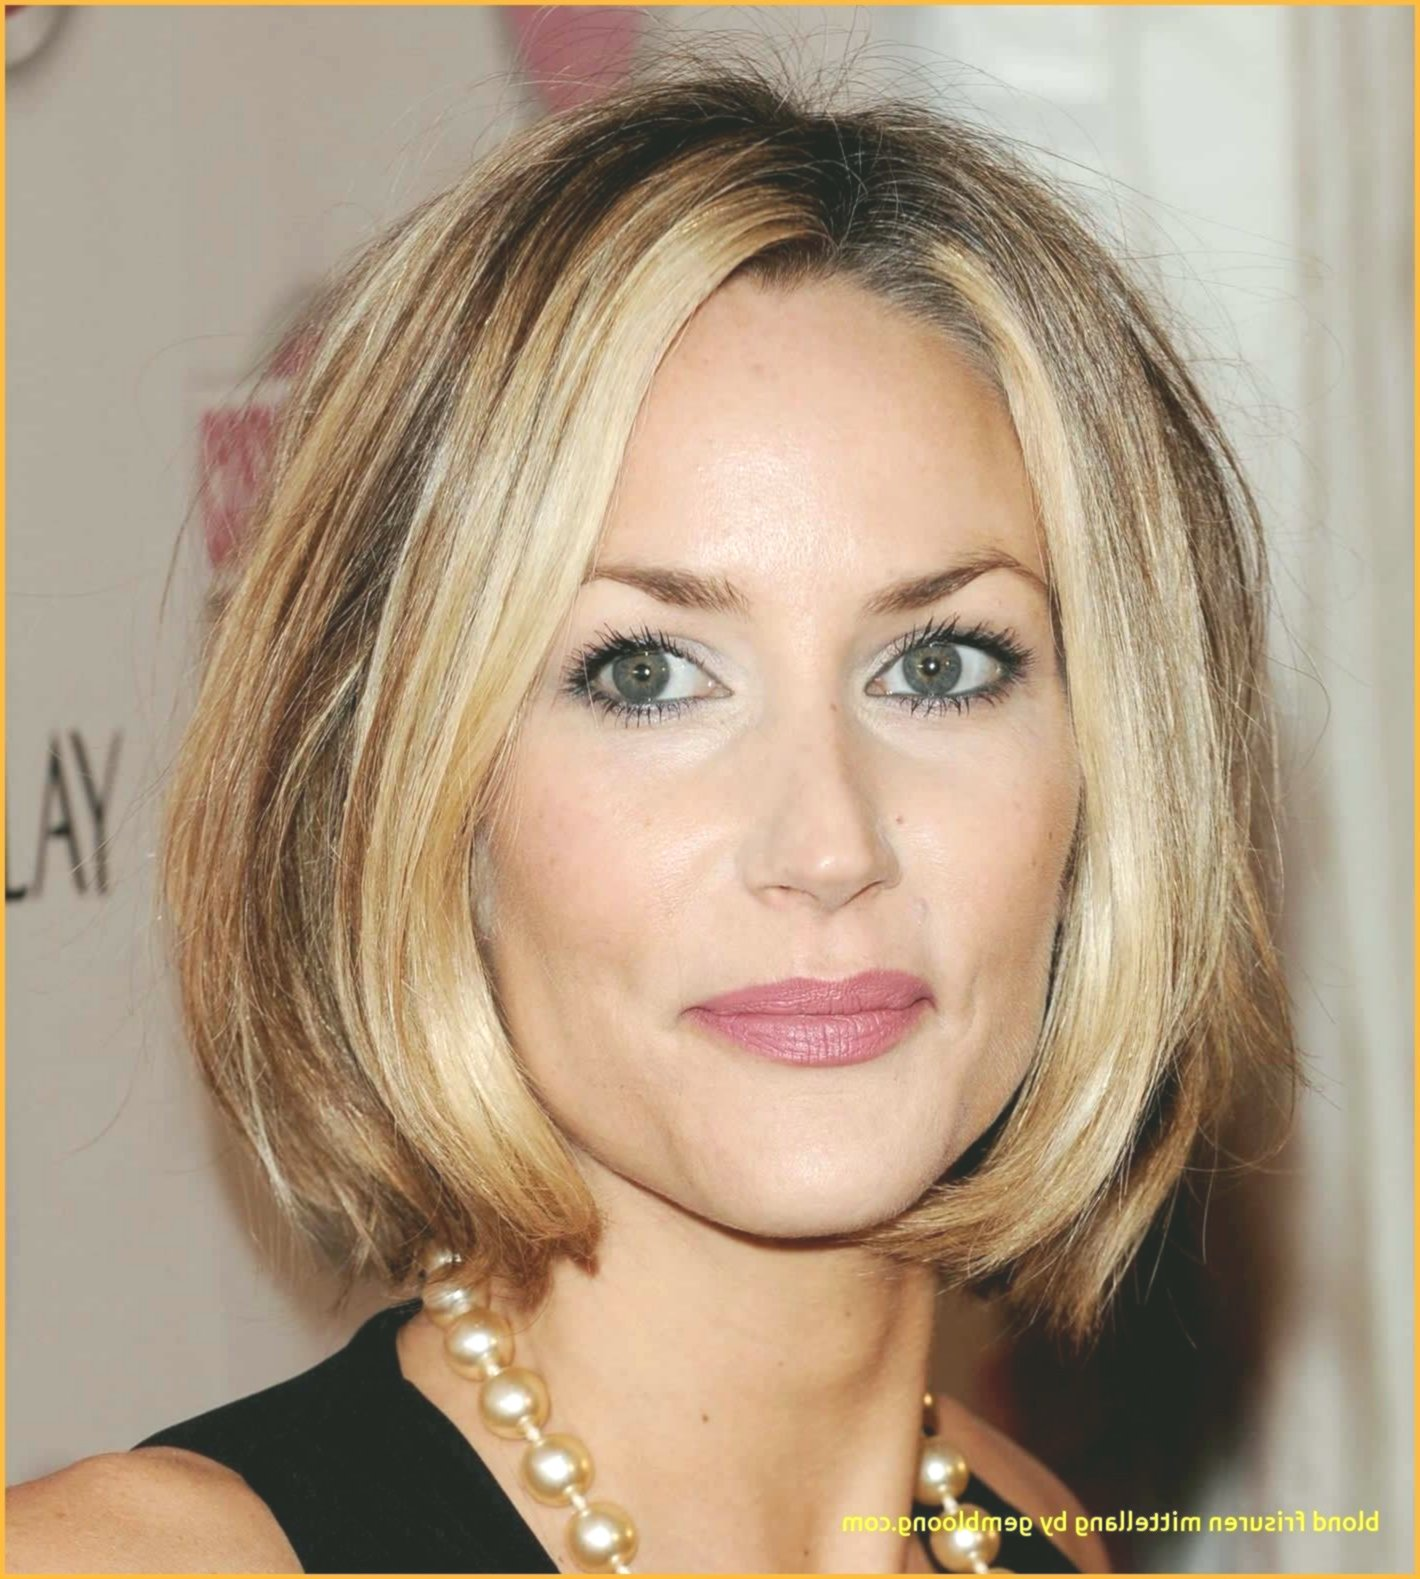 Excellent hairstyles for slim faces online Wonderful Hairstyles For Narrow Faces Decoration